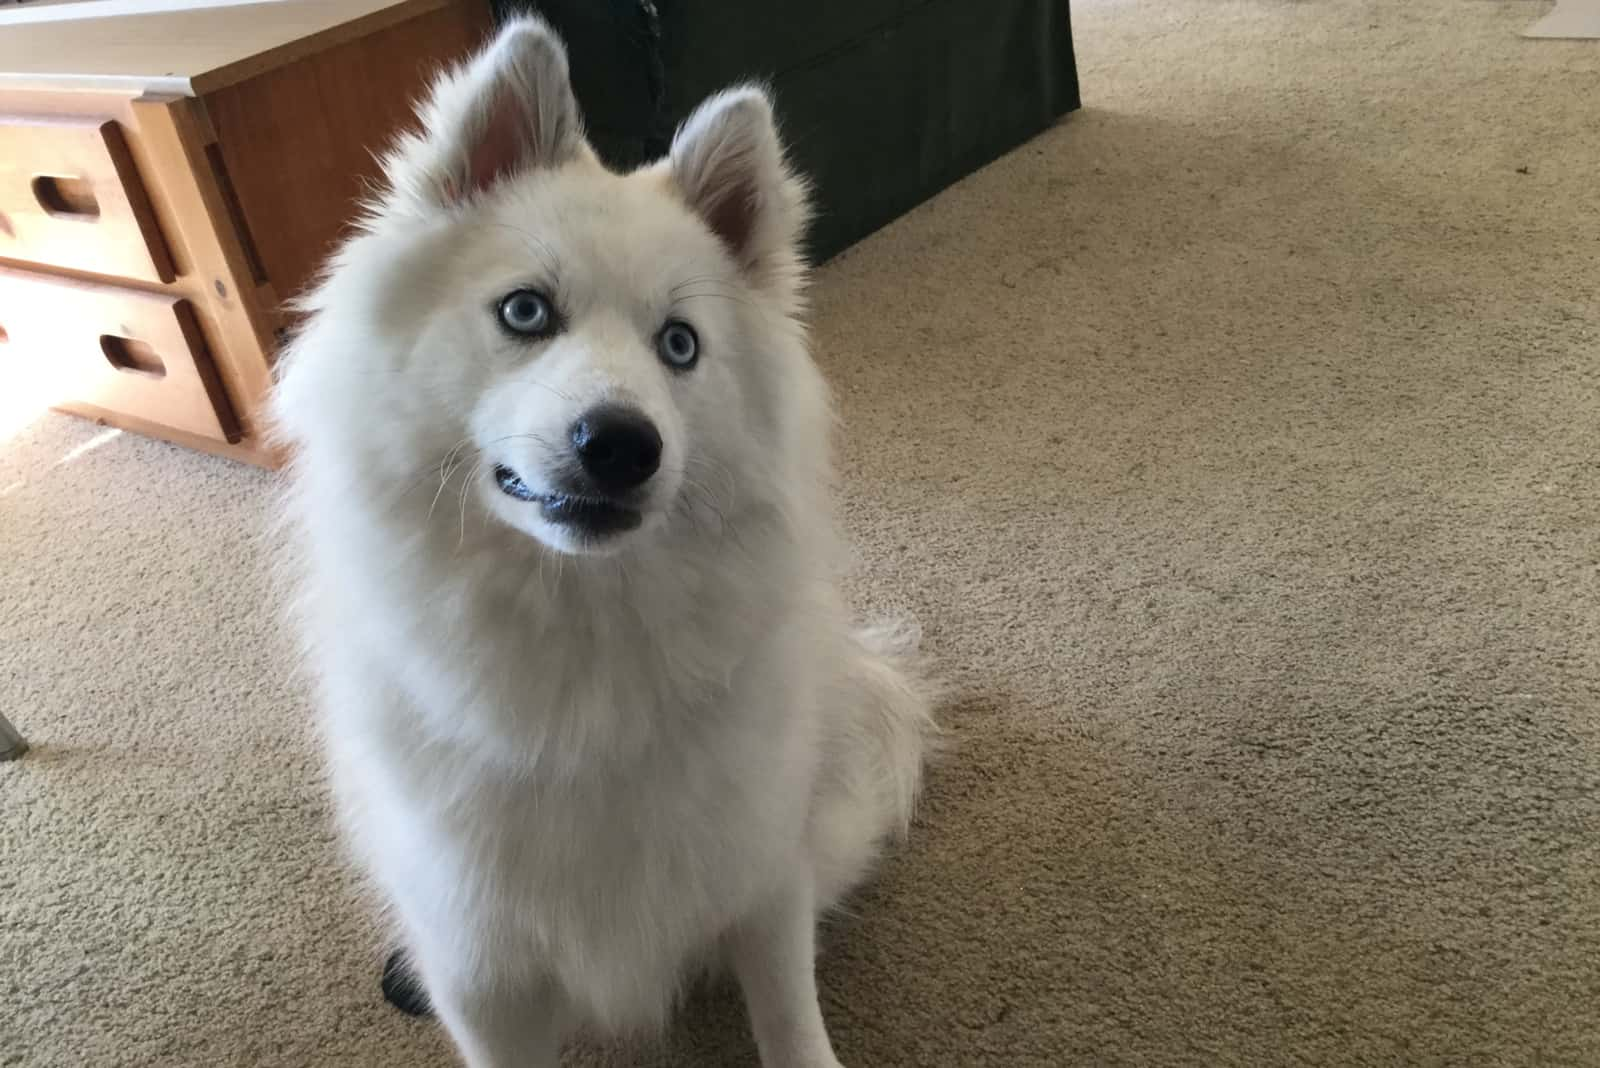 a white pomsky dog sits on the floor of the room and watches something